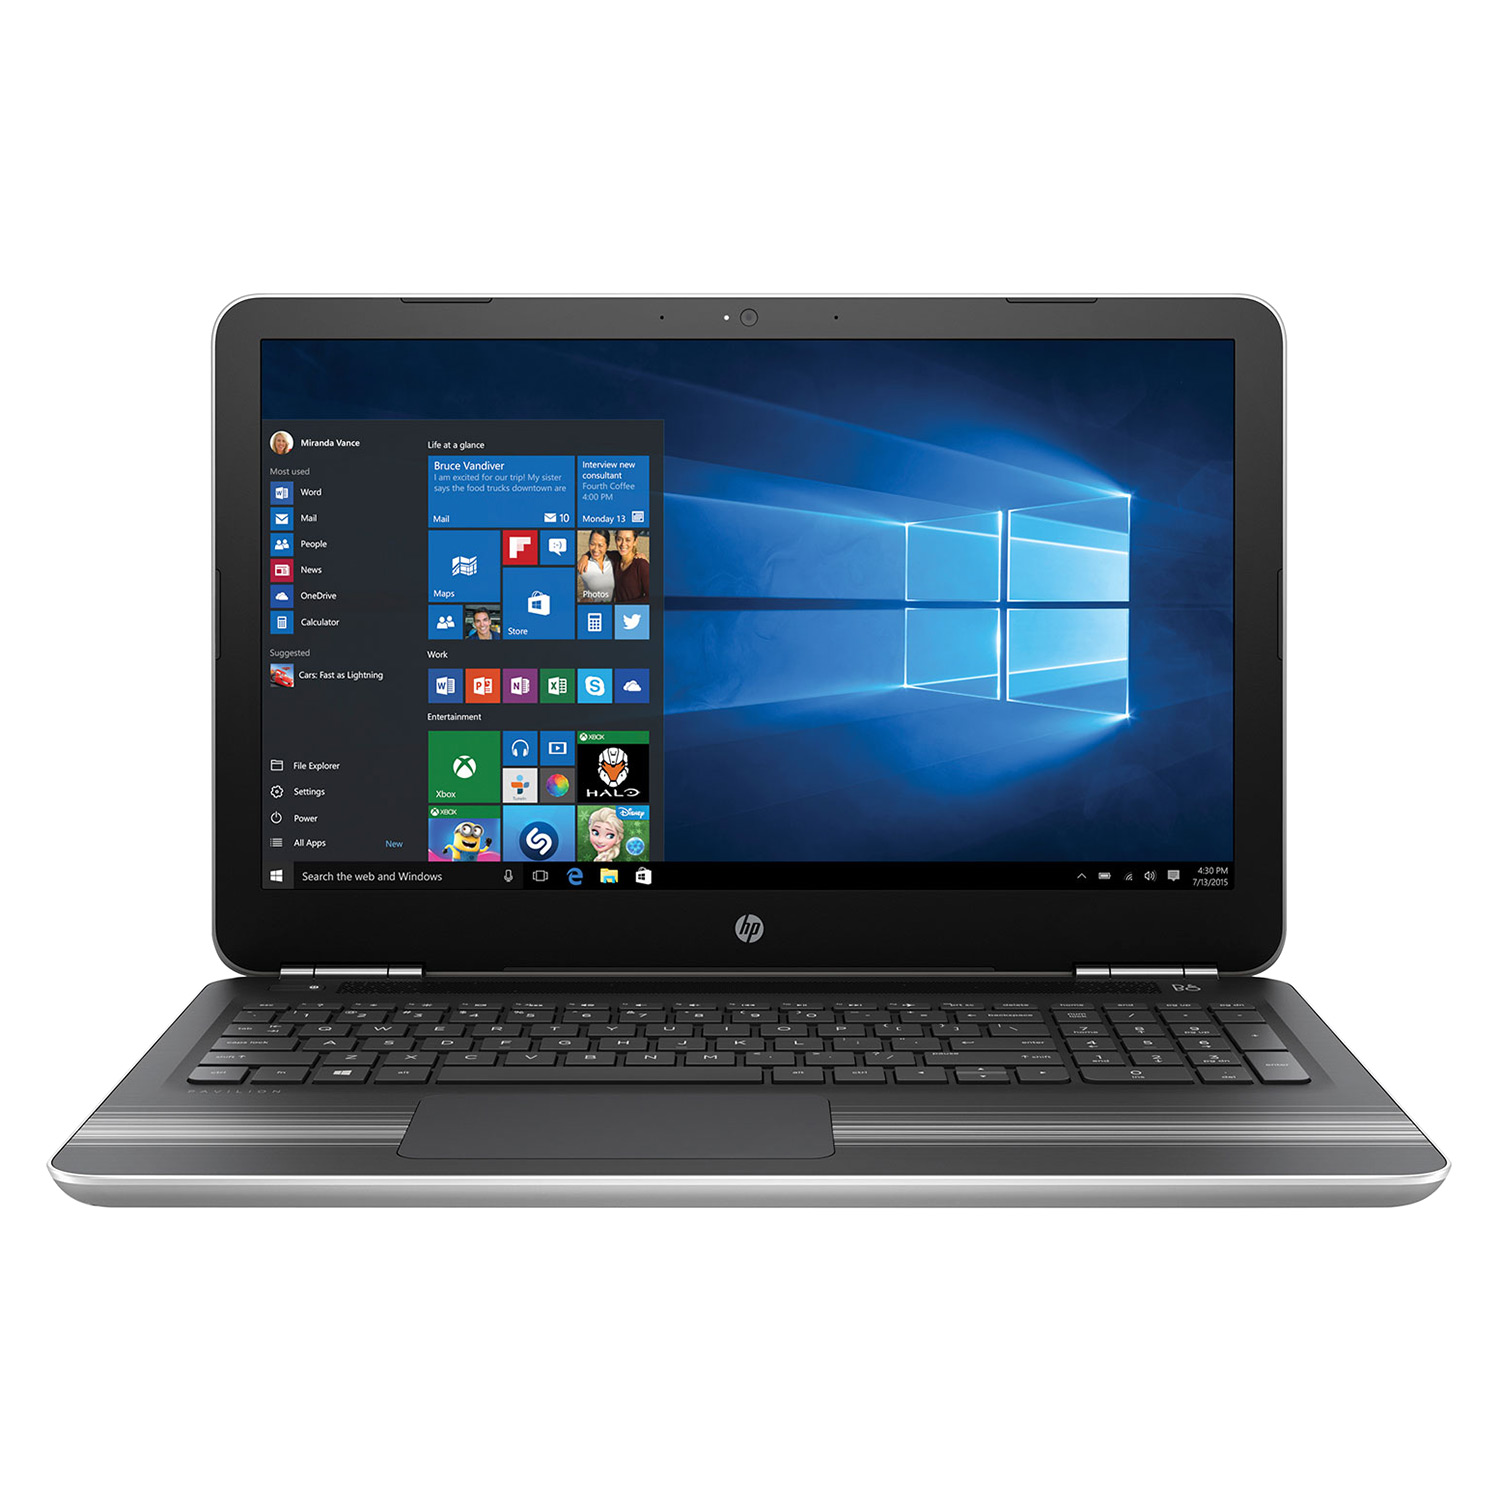 Laptop HP Pavilion15 - AU071TX X3C20PA Core i7-6500U/Win 10